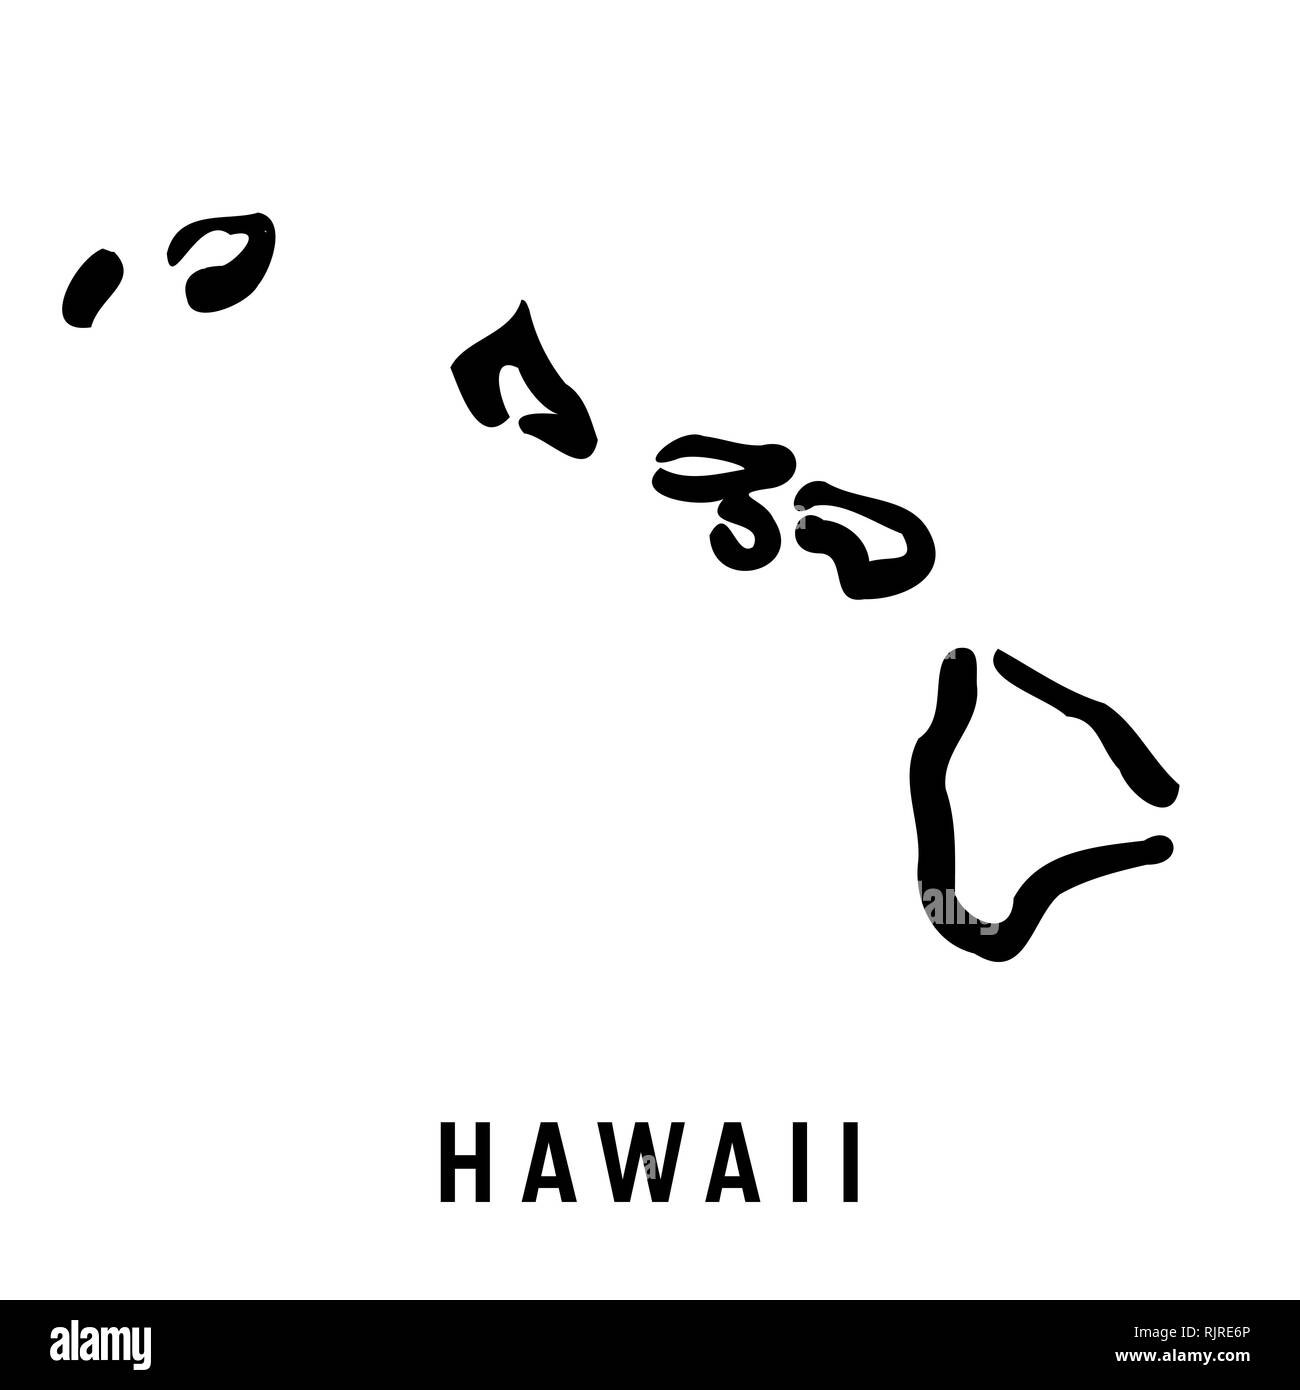 Hawaii simple logo. State map outline - smooth simplified US ...